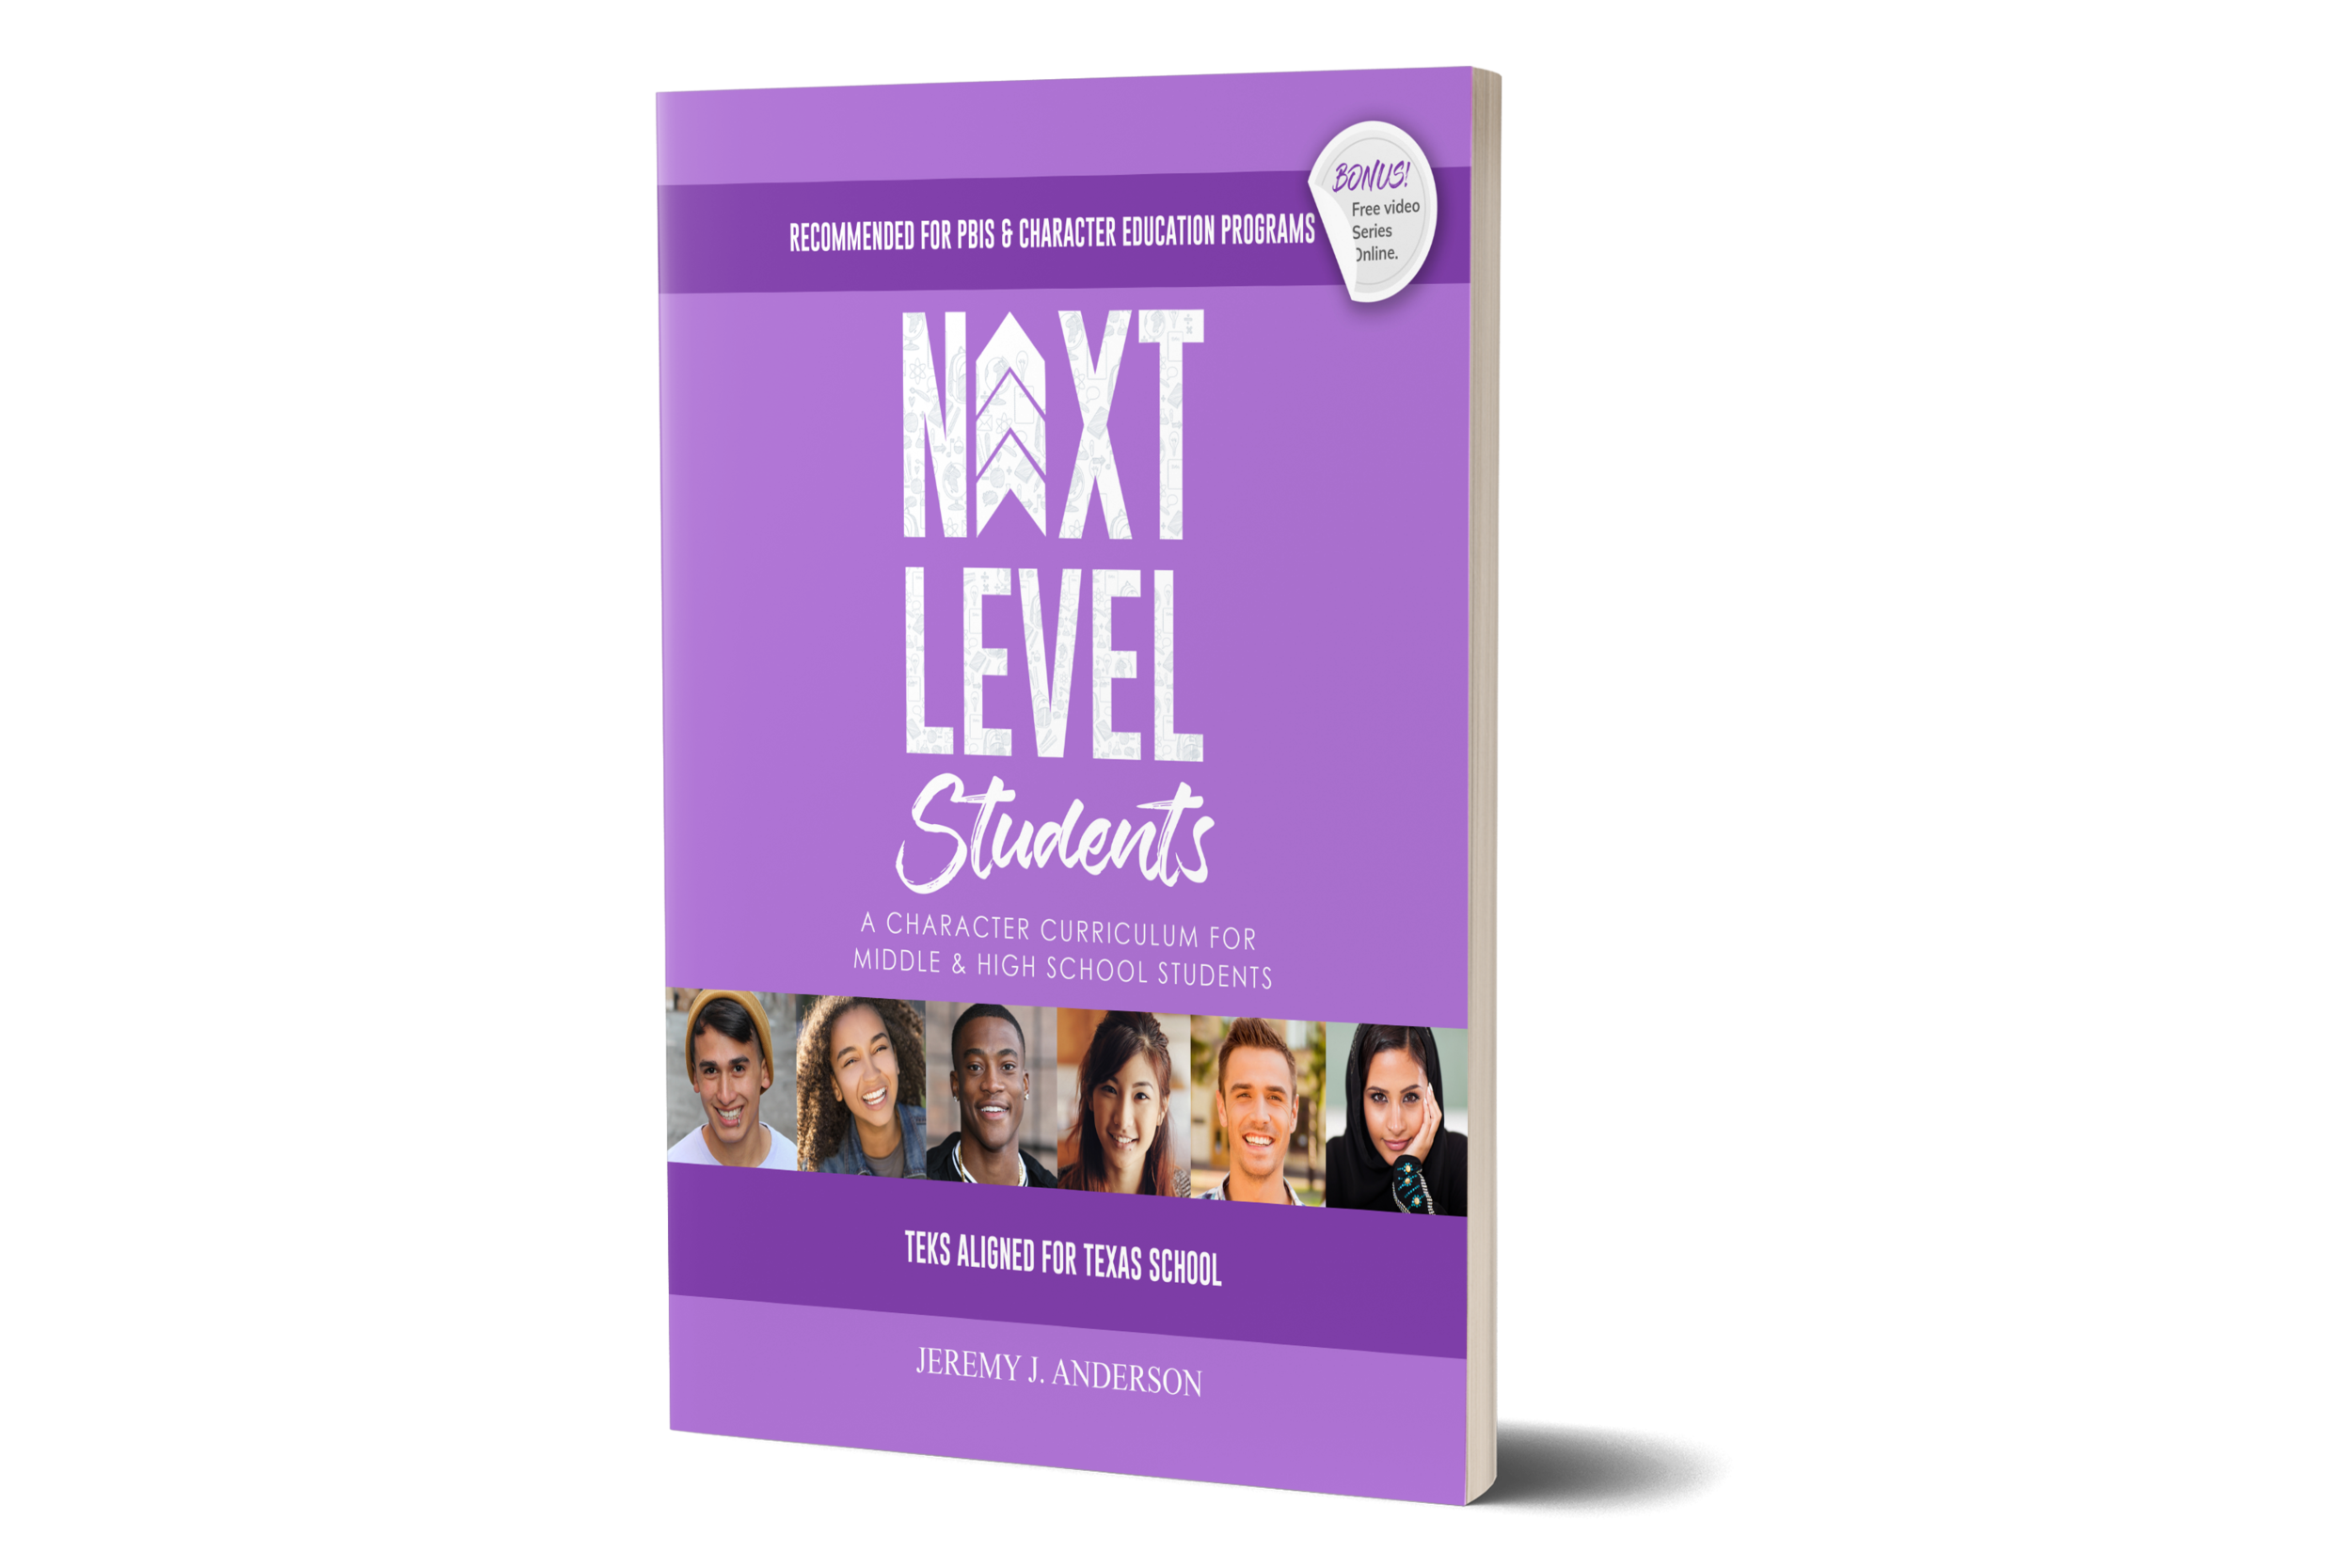 When Adding Sel To Curriculum >> Next Level Students Curriculum Texas Edition Jeremy Anderson Top